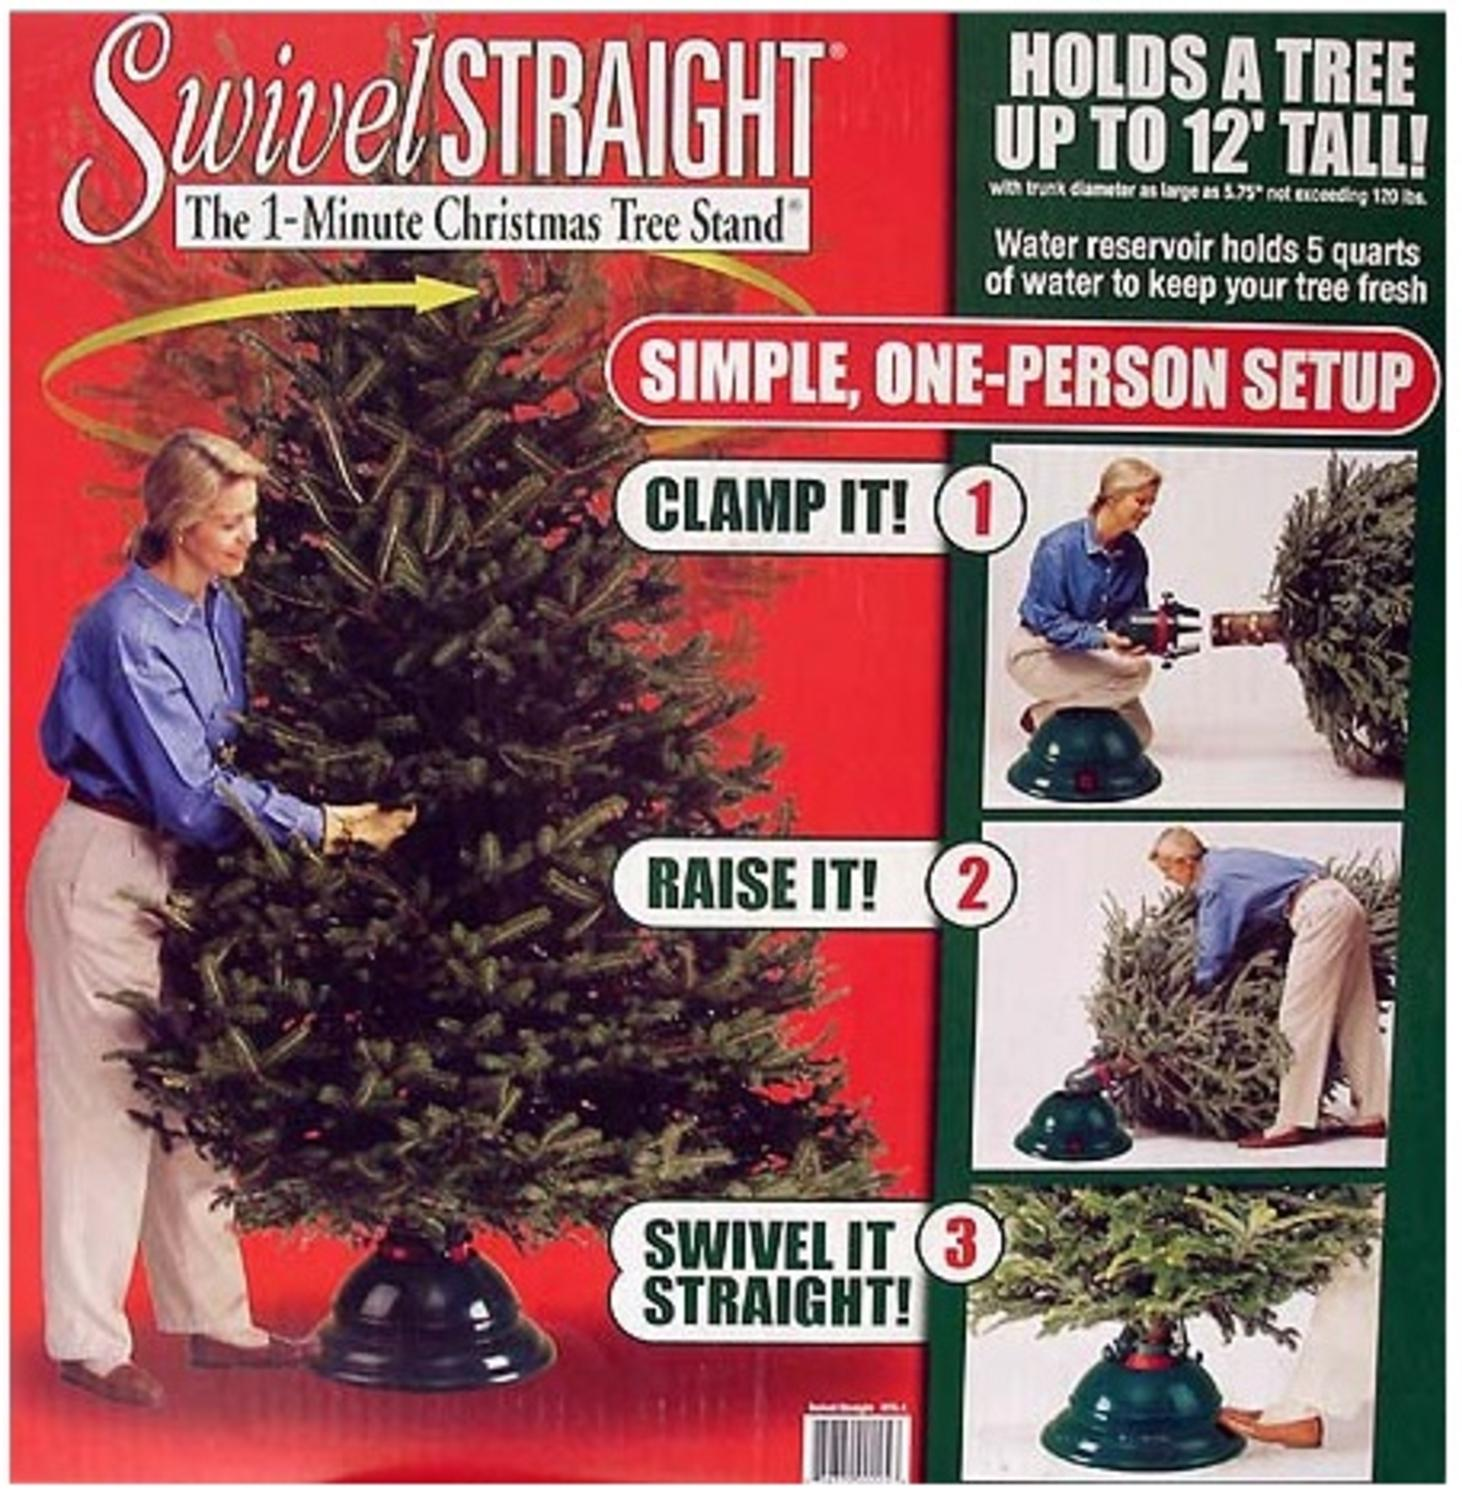 Swivel Straight Plus Christmas Tree Stand - For Trees Up To 12' Tall - Walmart.com